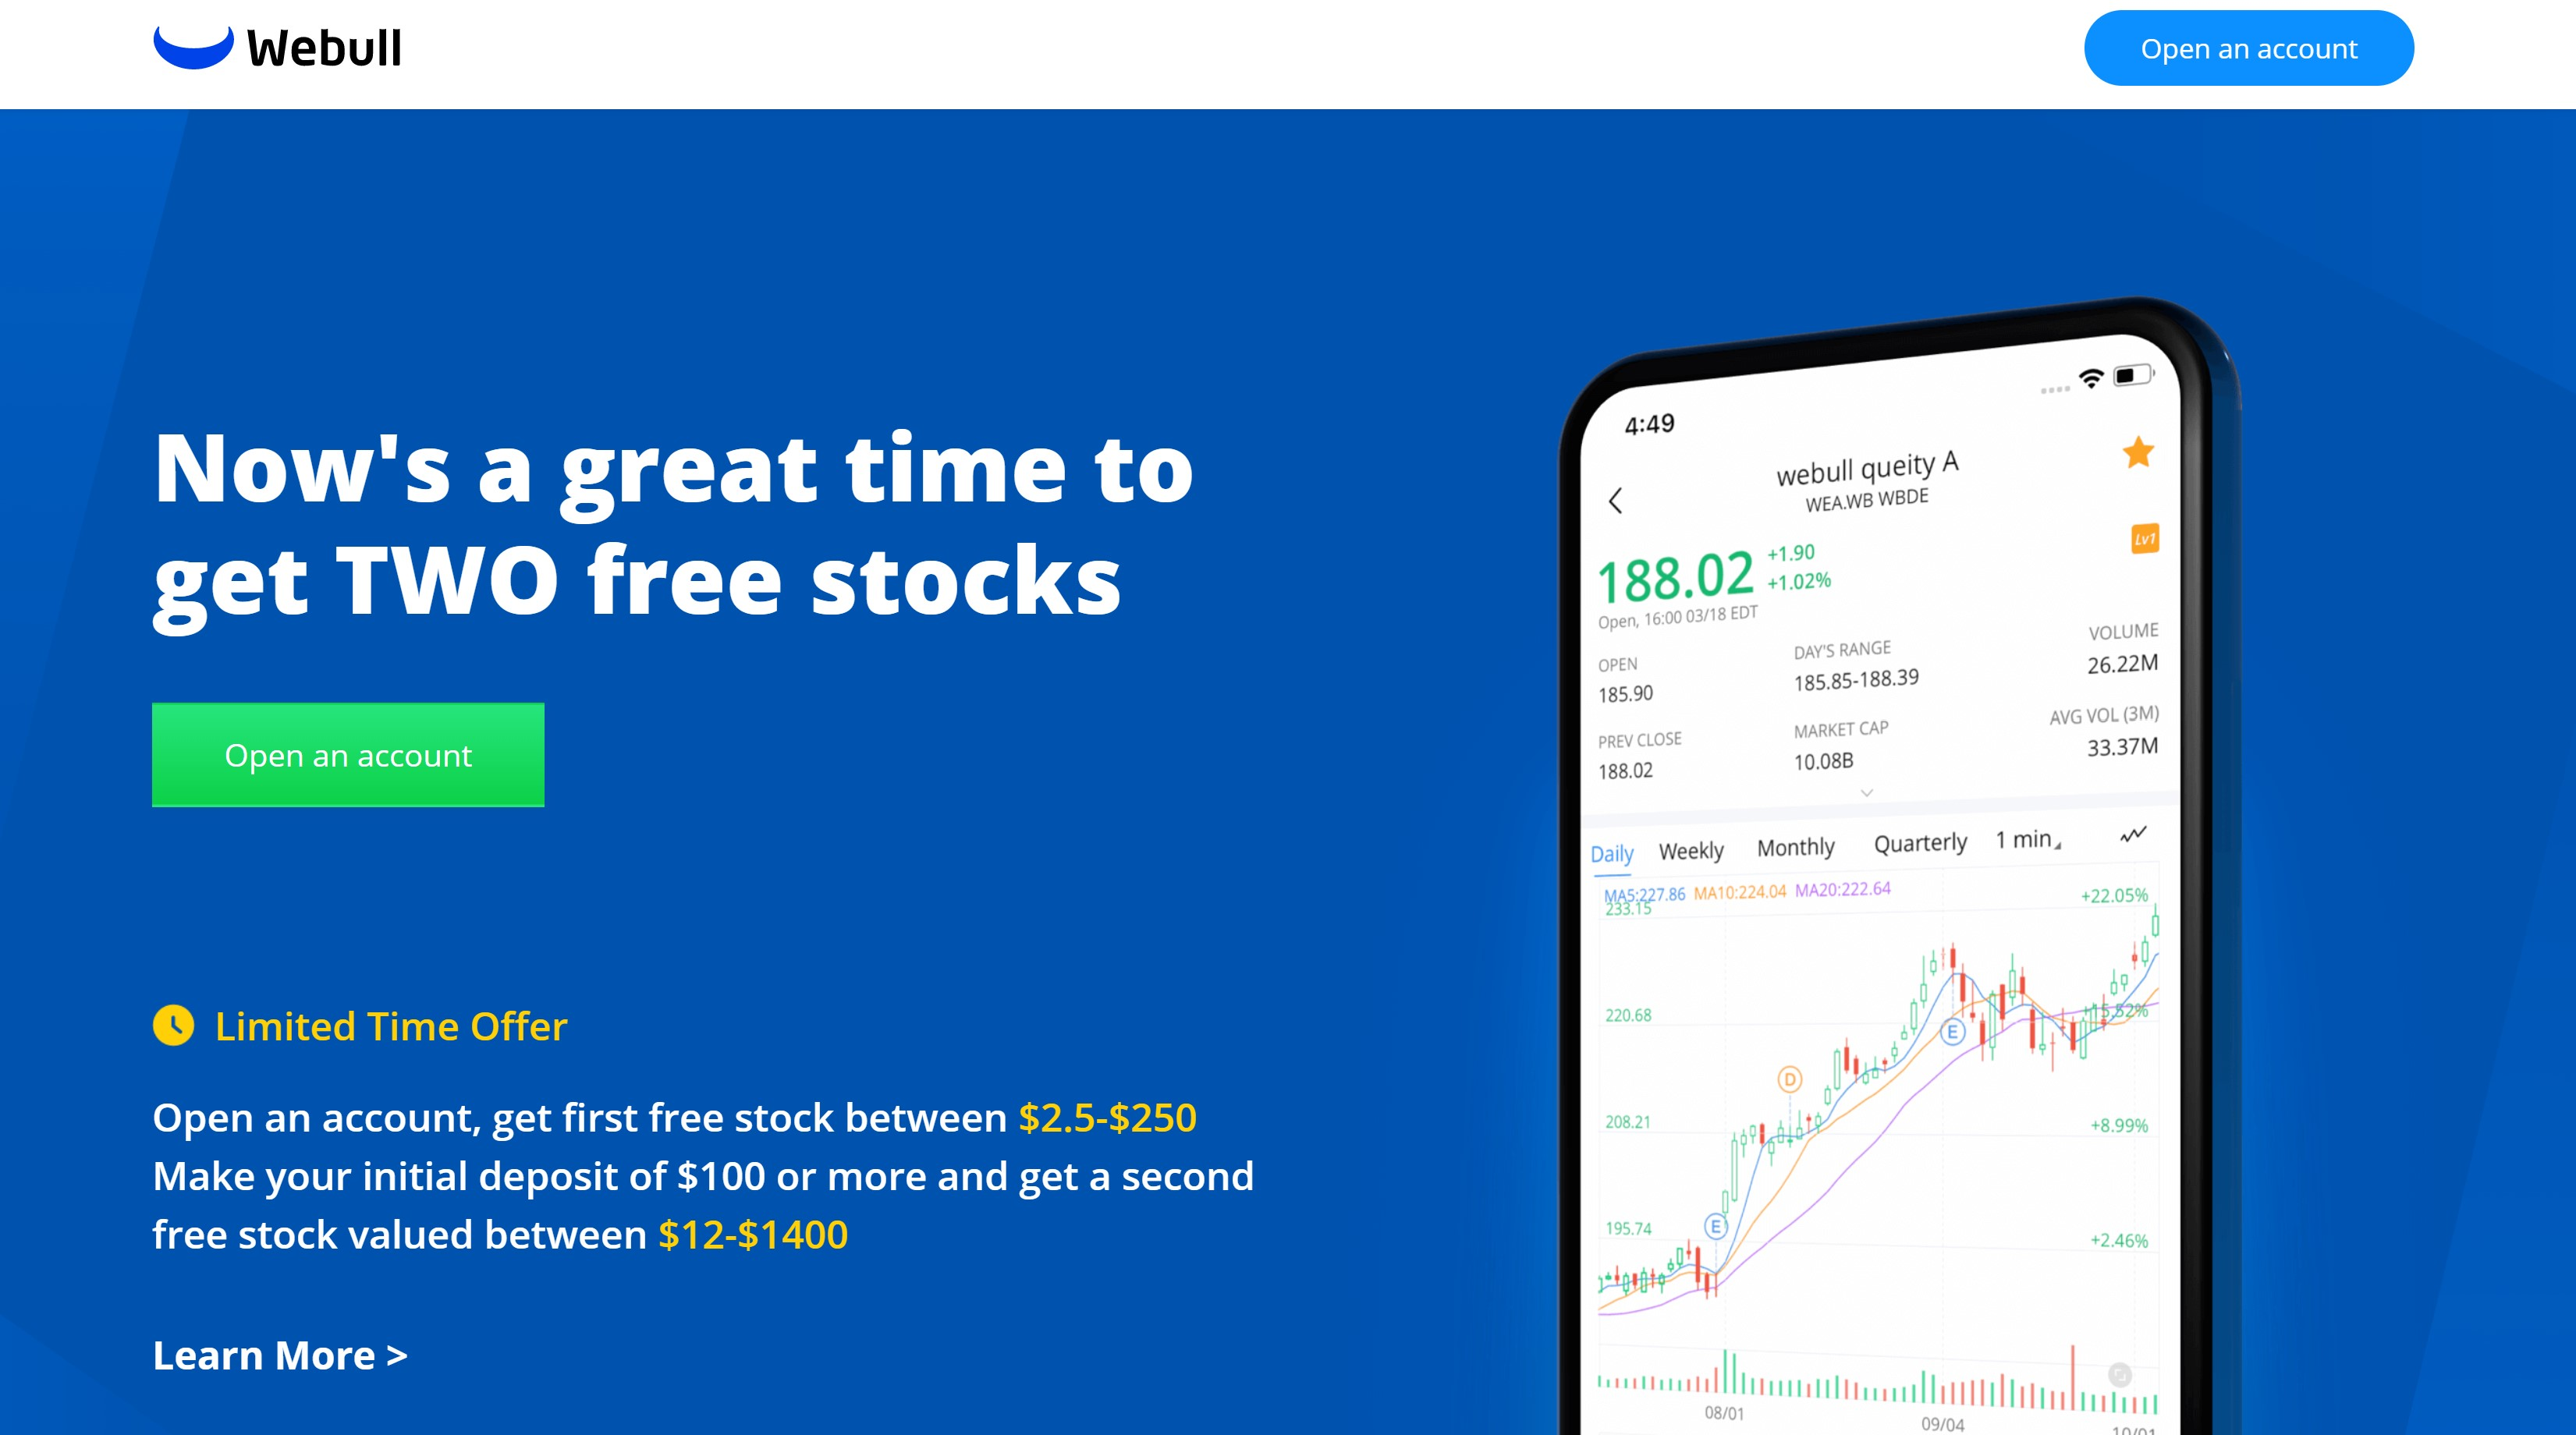 GET FREE STOCK REFERRAL